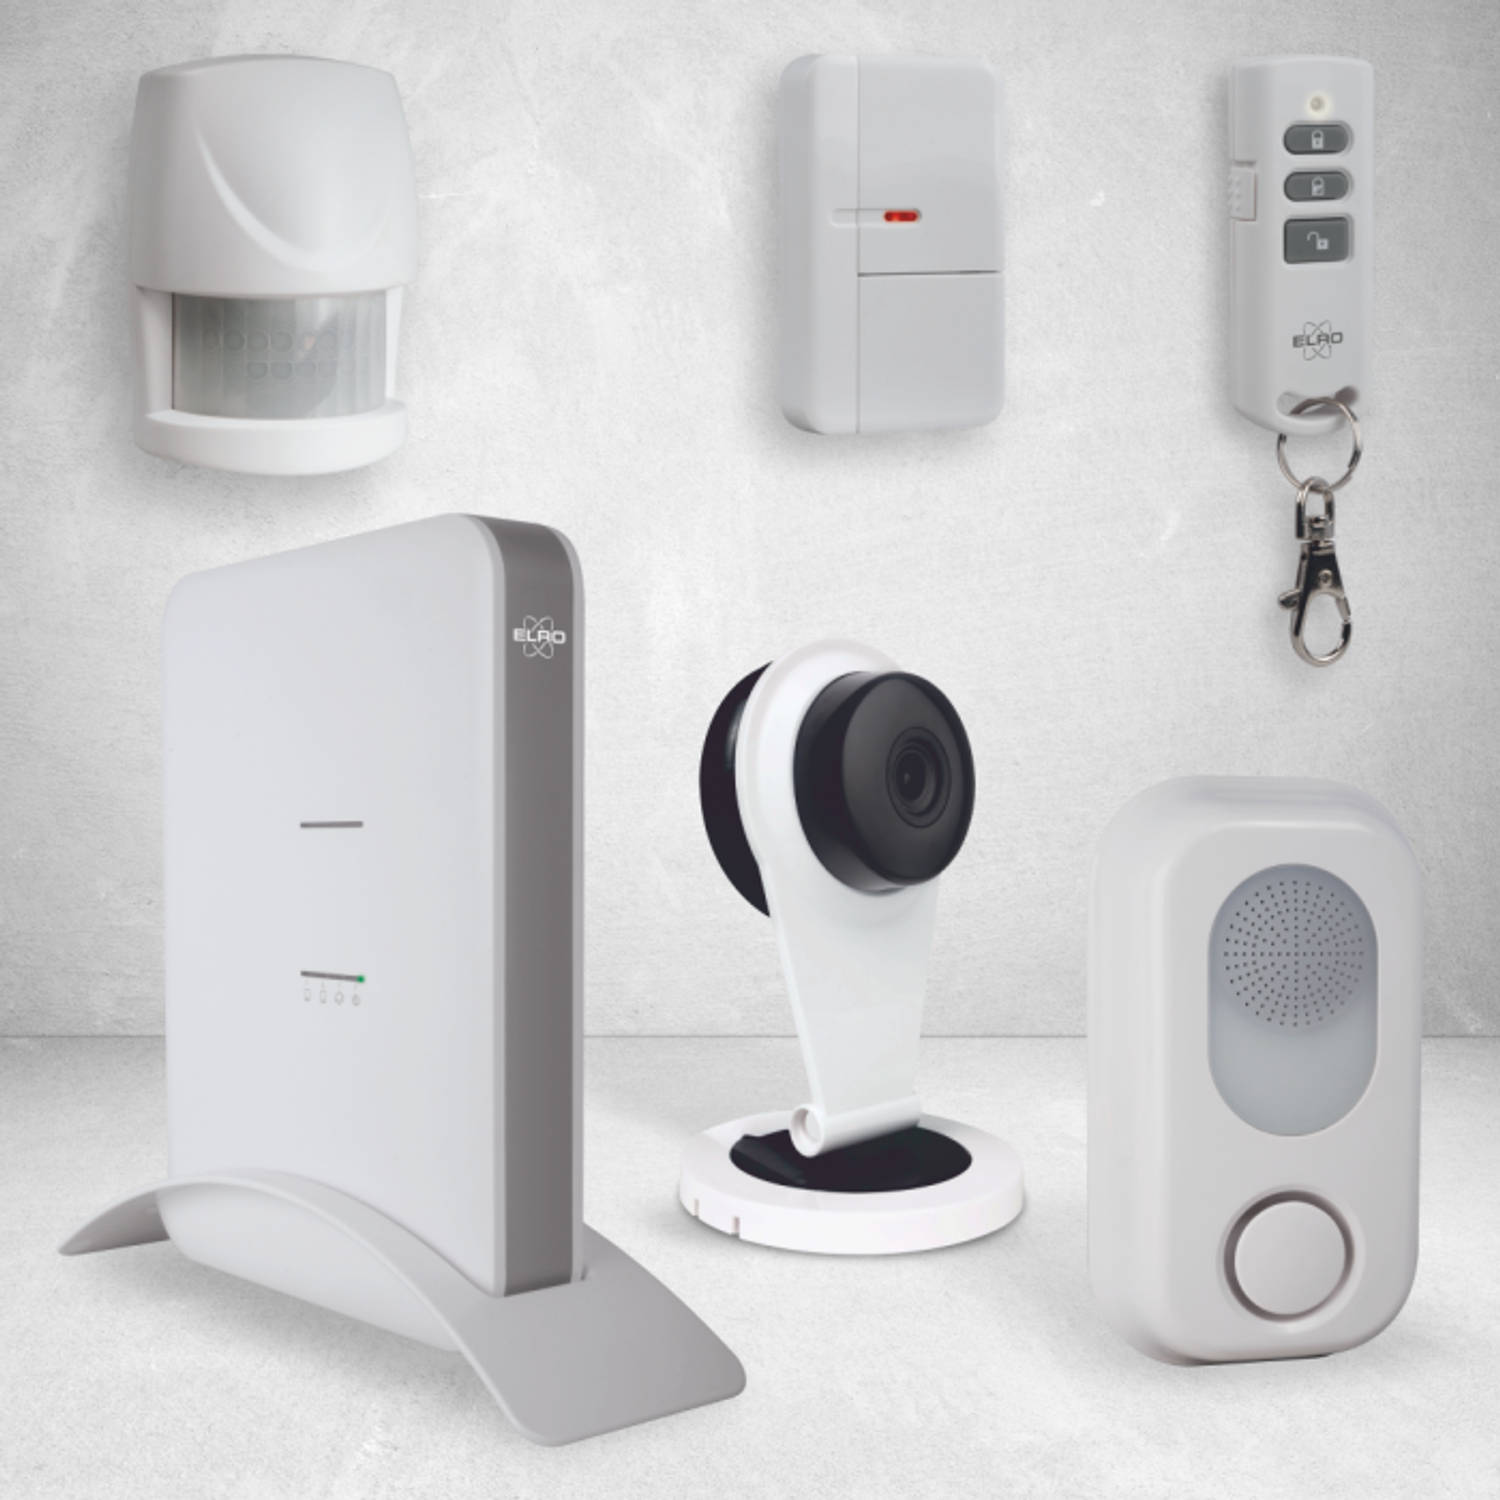 ELRO AS8000 Smart Home Compleet Alarmsysteem - Met 1080P HD Camera & App